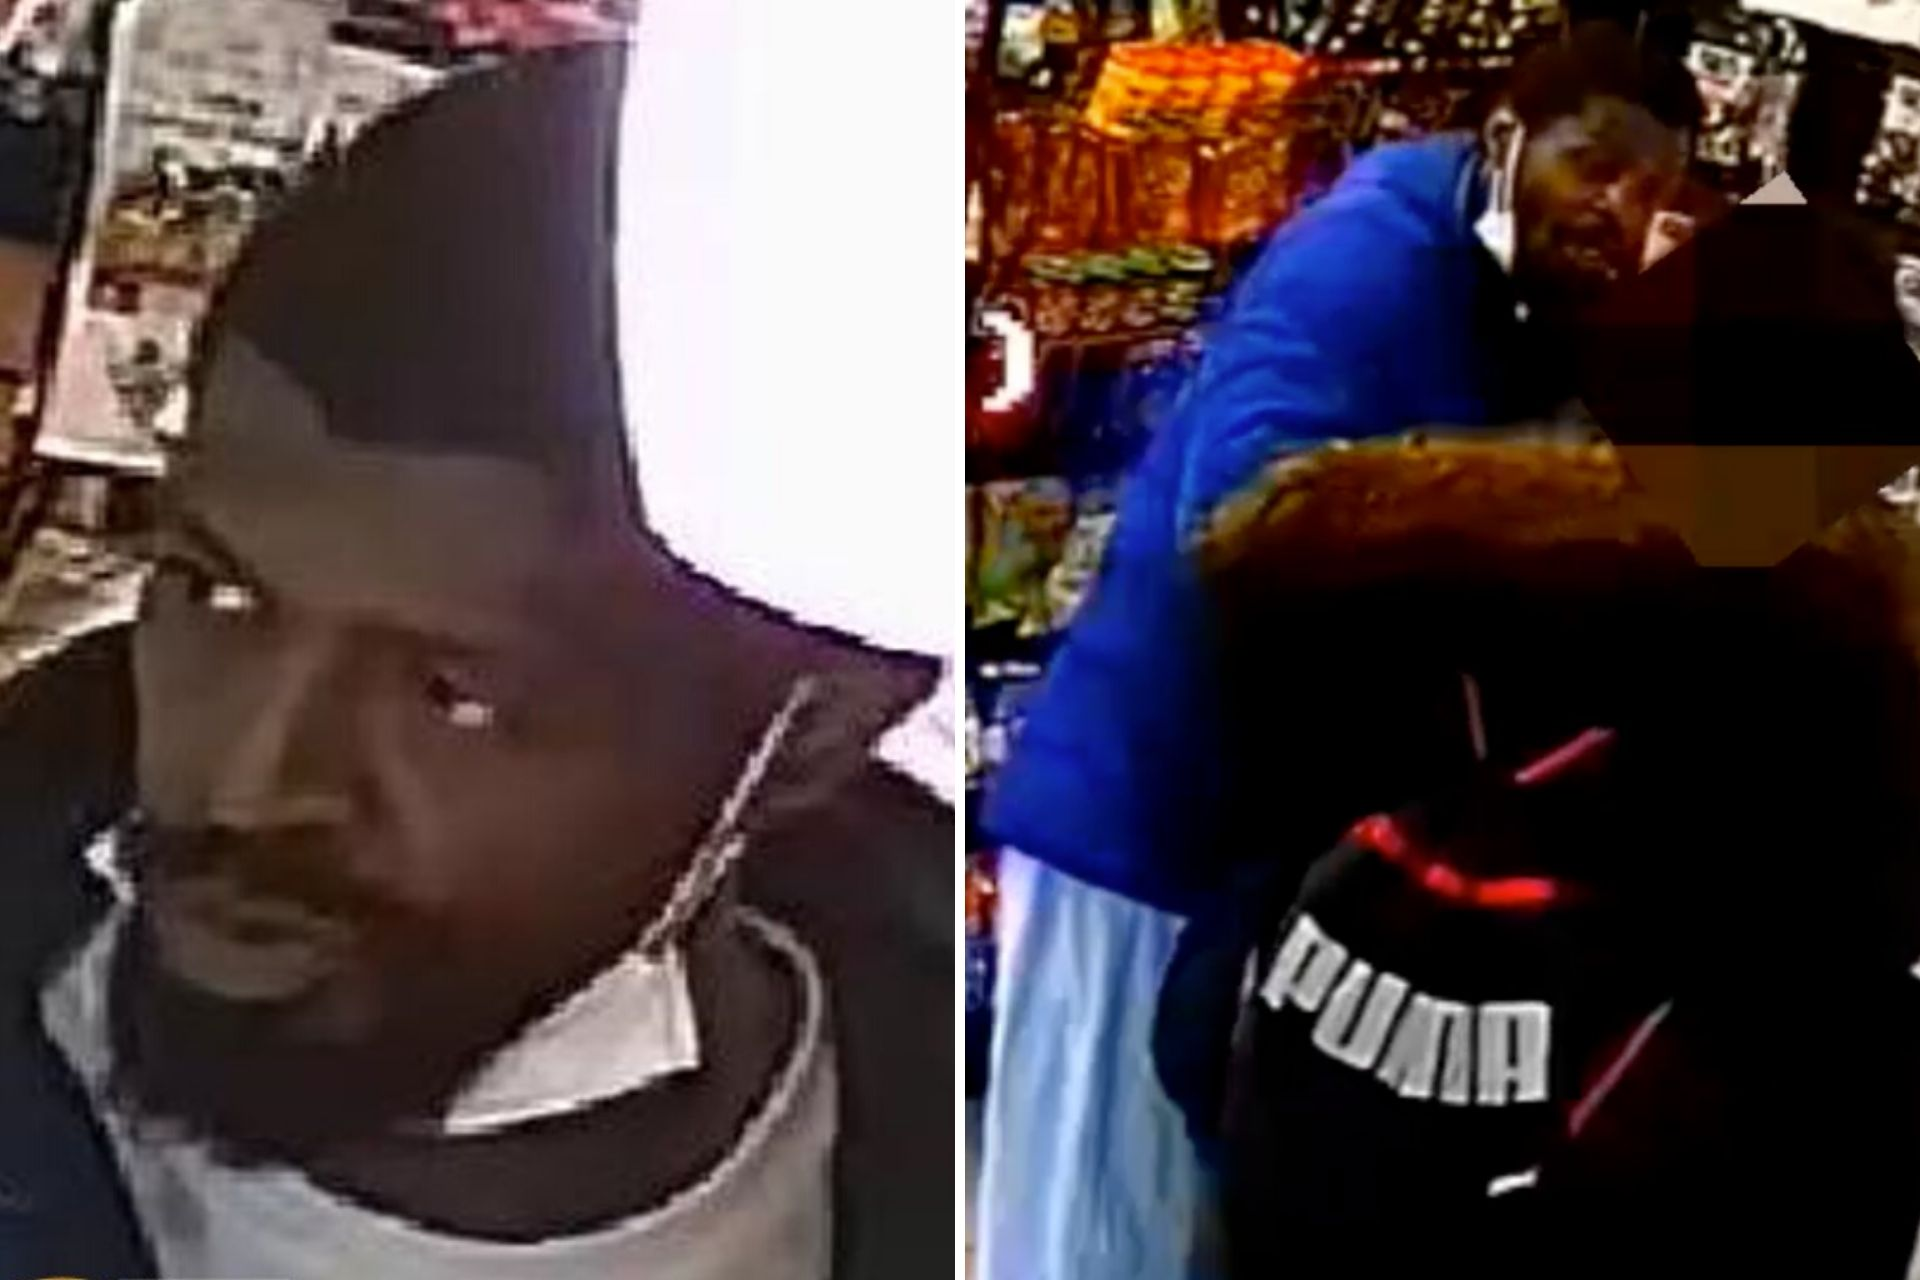 Man steals $300 from woman's pocket in Chelsea deli